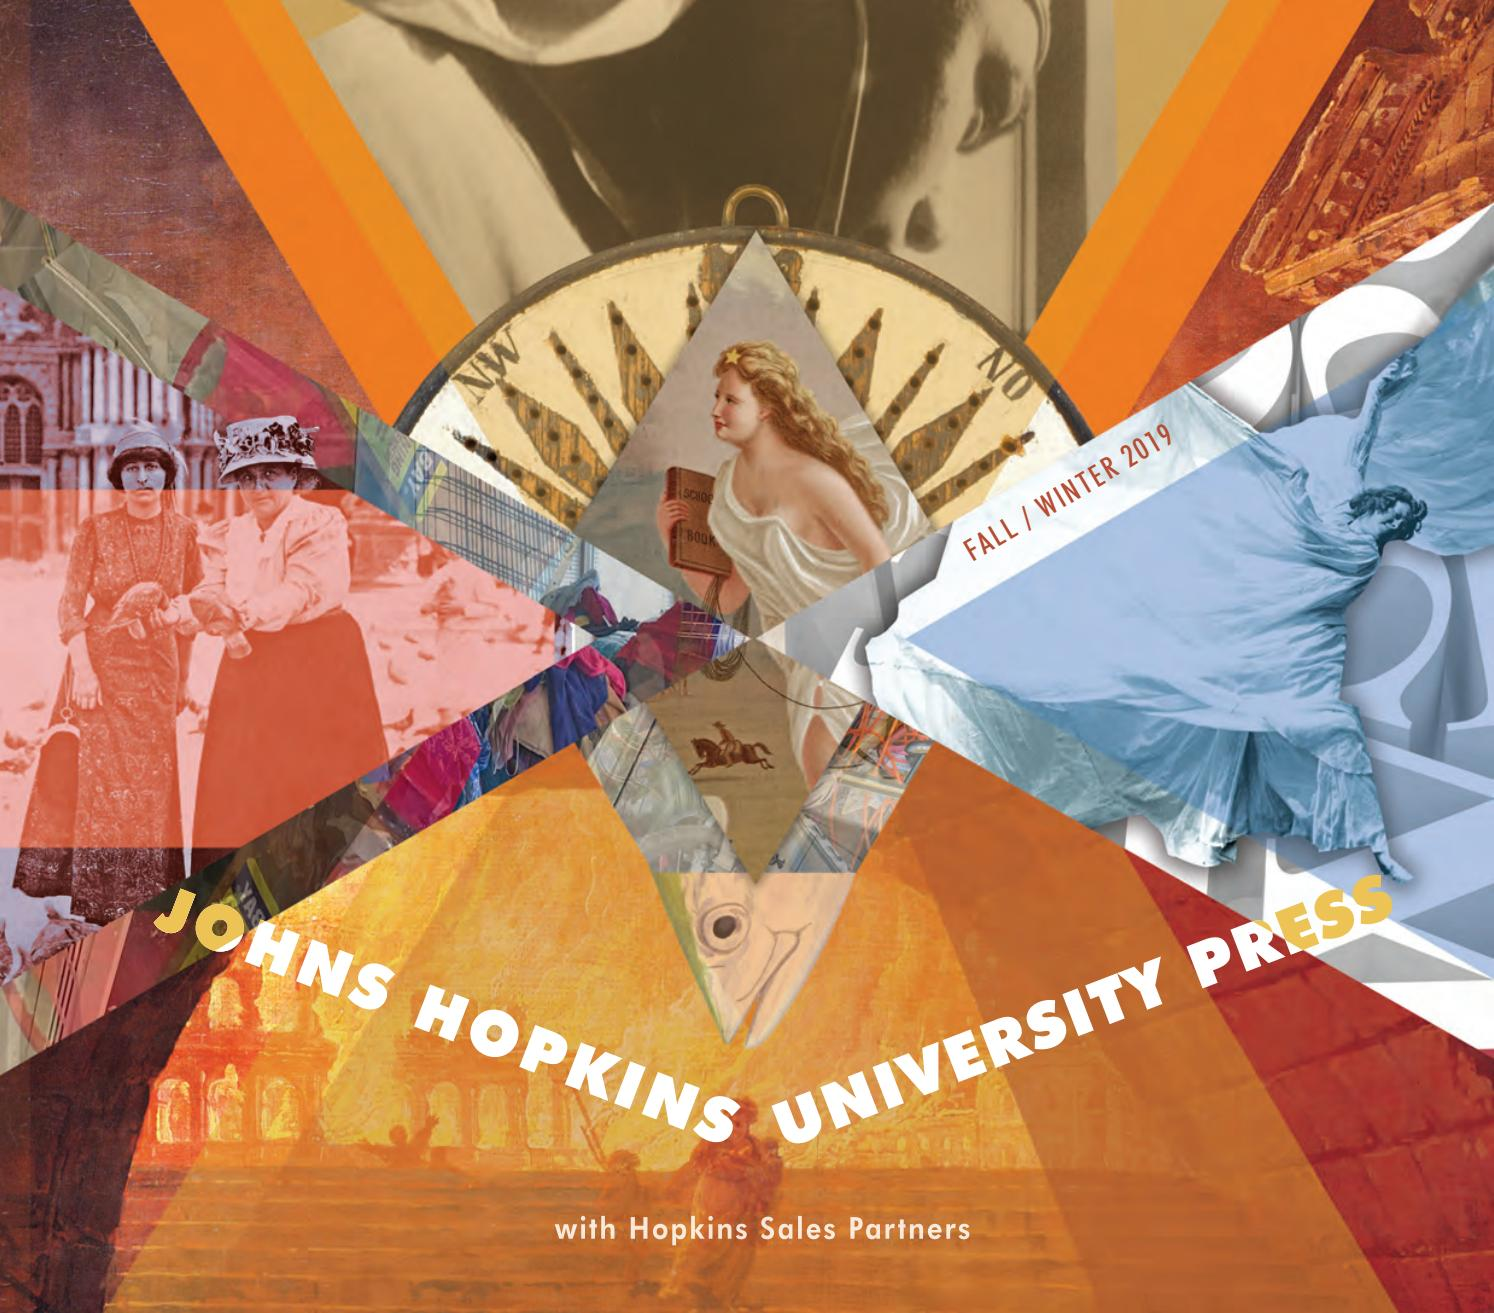 f33a551d5d2 Johns Hopkins University Press New Books for Fall 2019 by Susan Ventura -  issuu